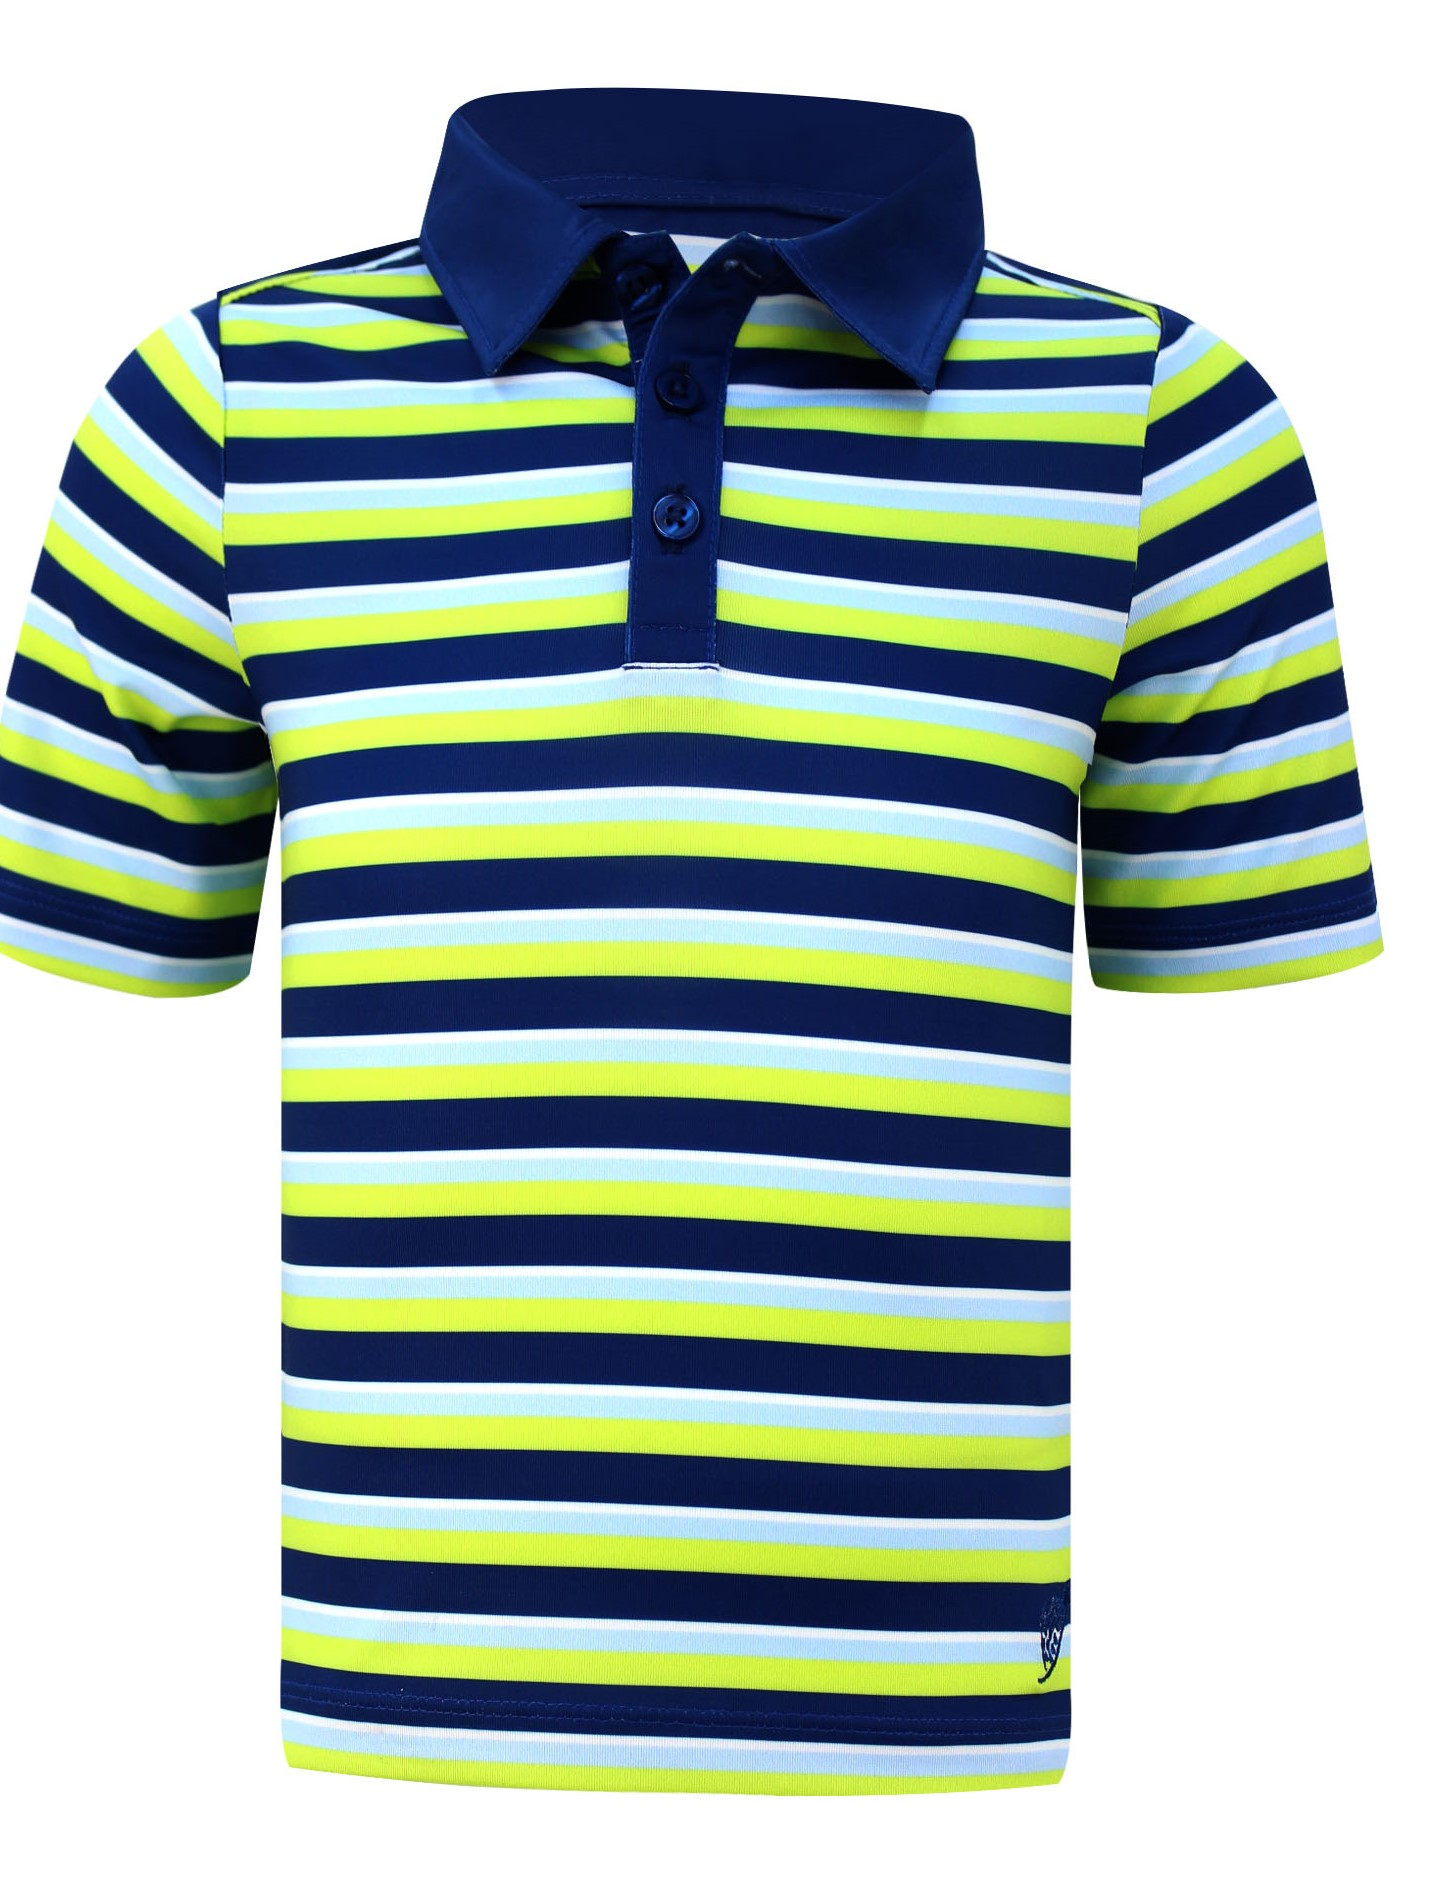 Infant/Toddler Polo Shirt  In Navy & Lime Stripe